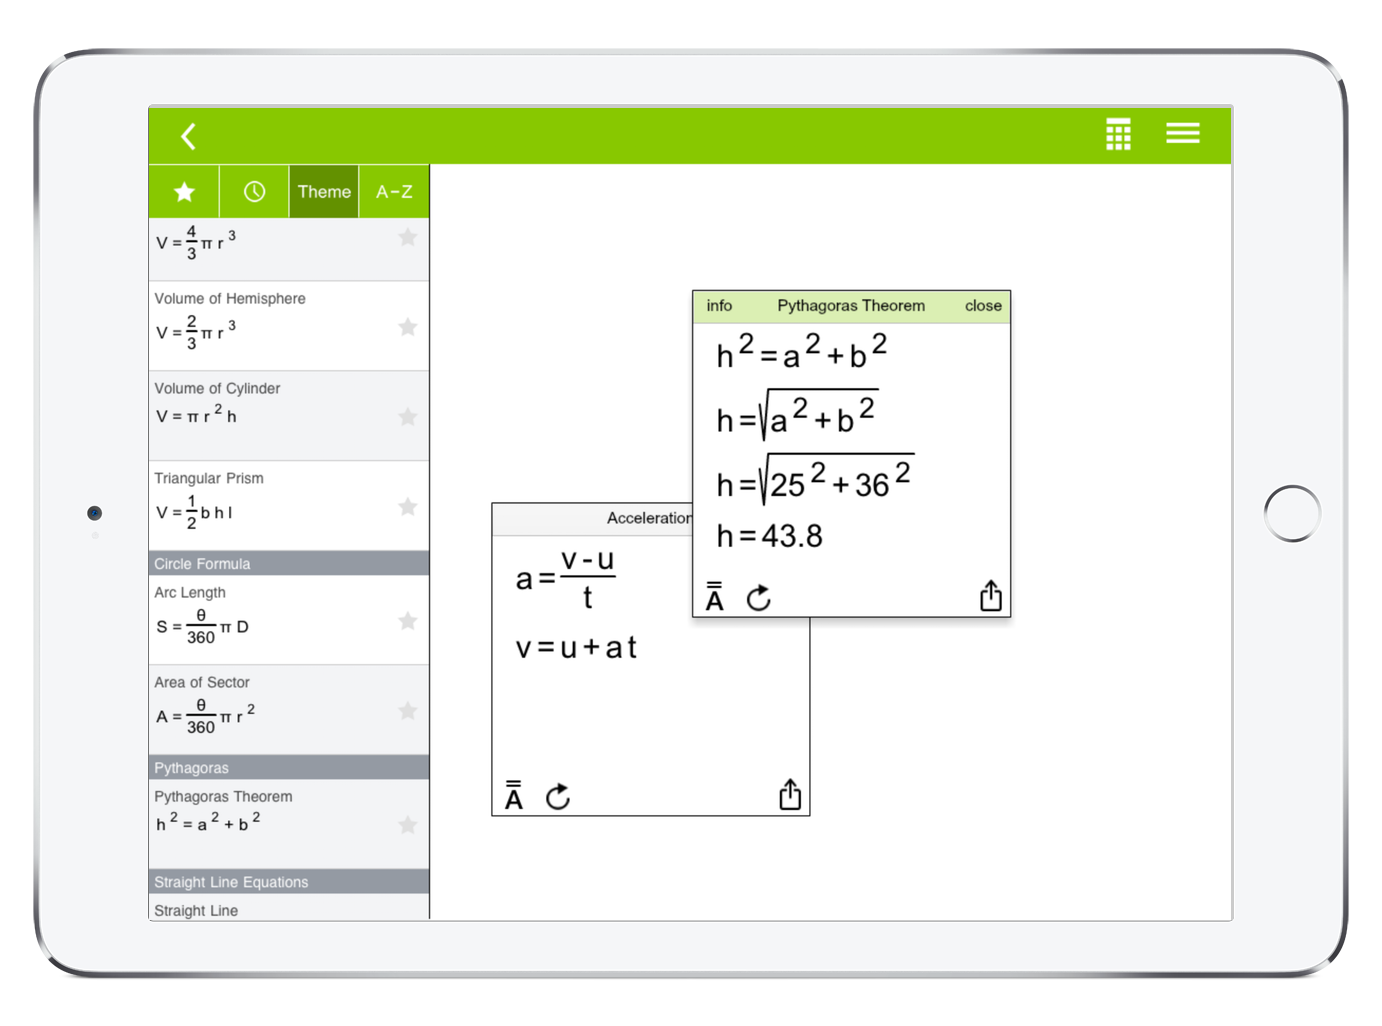 How to use EquationLab in math and physics for fast and accurate calculations